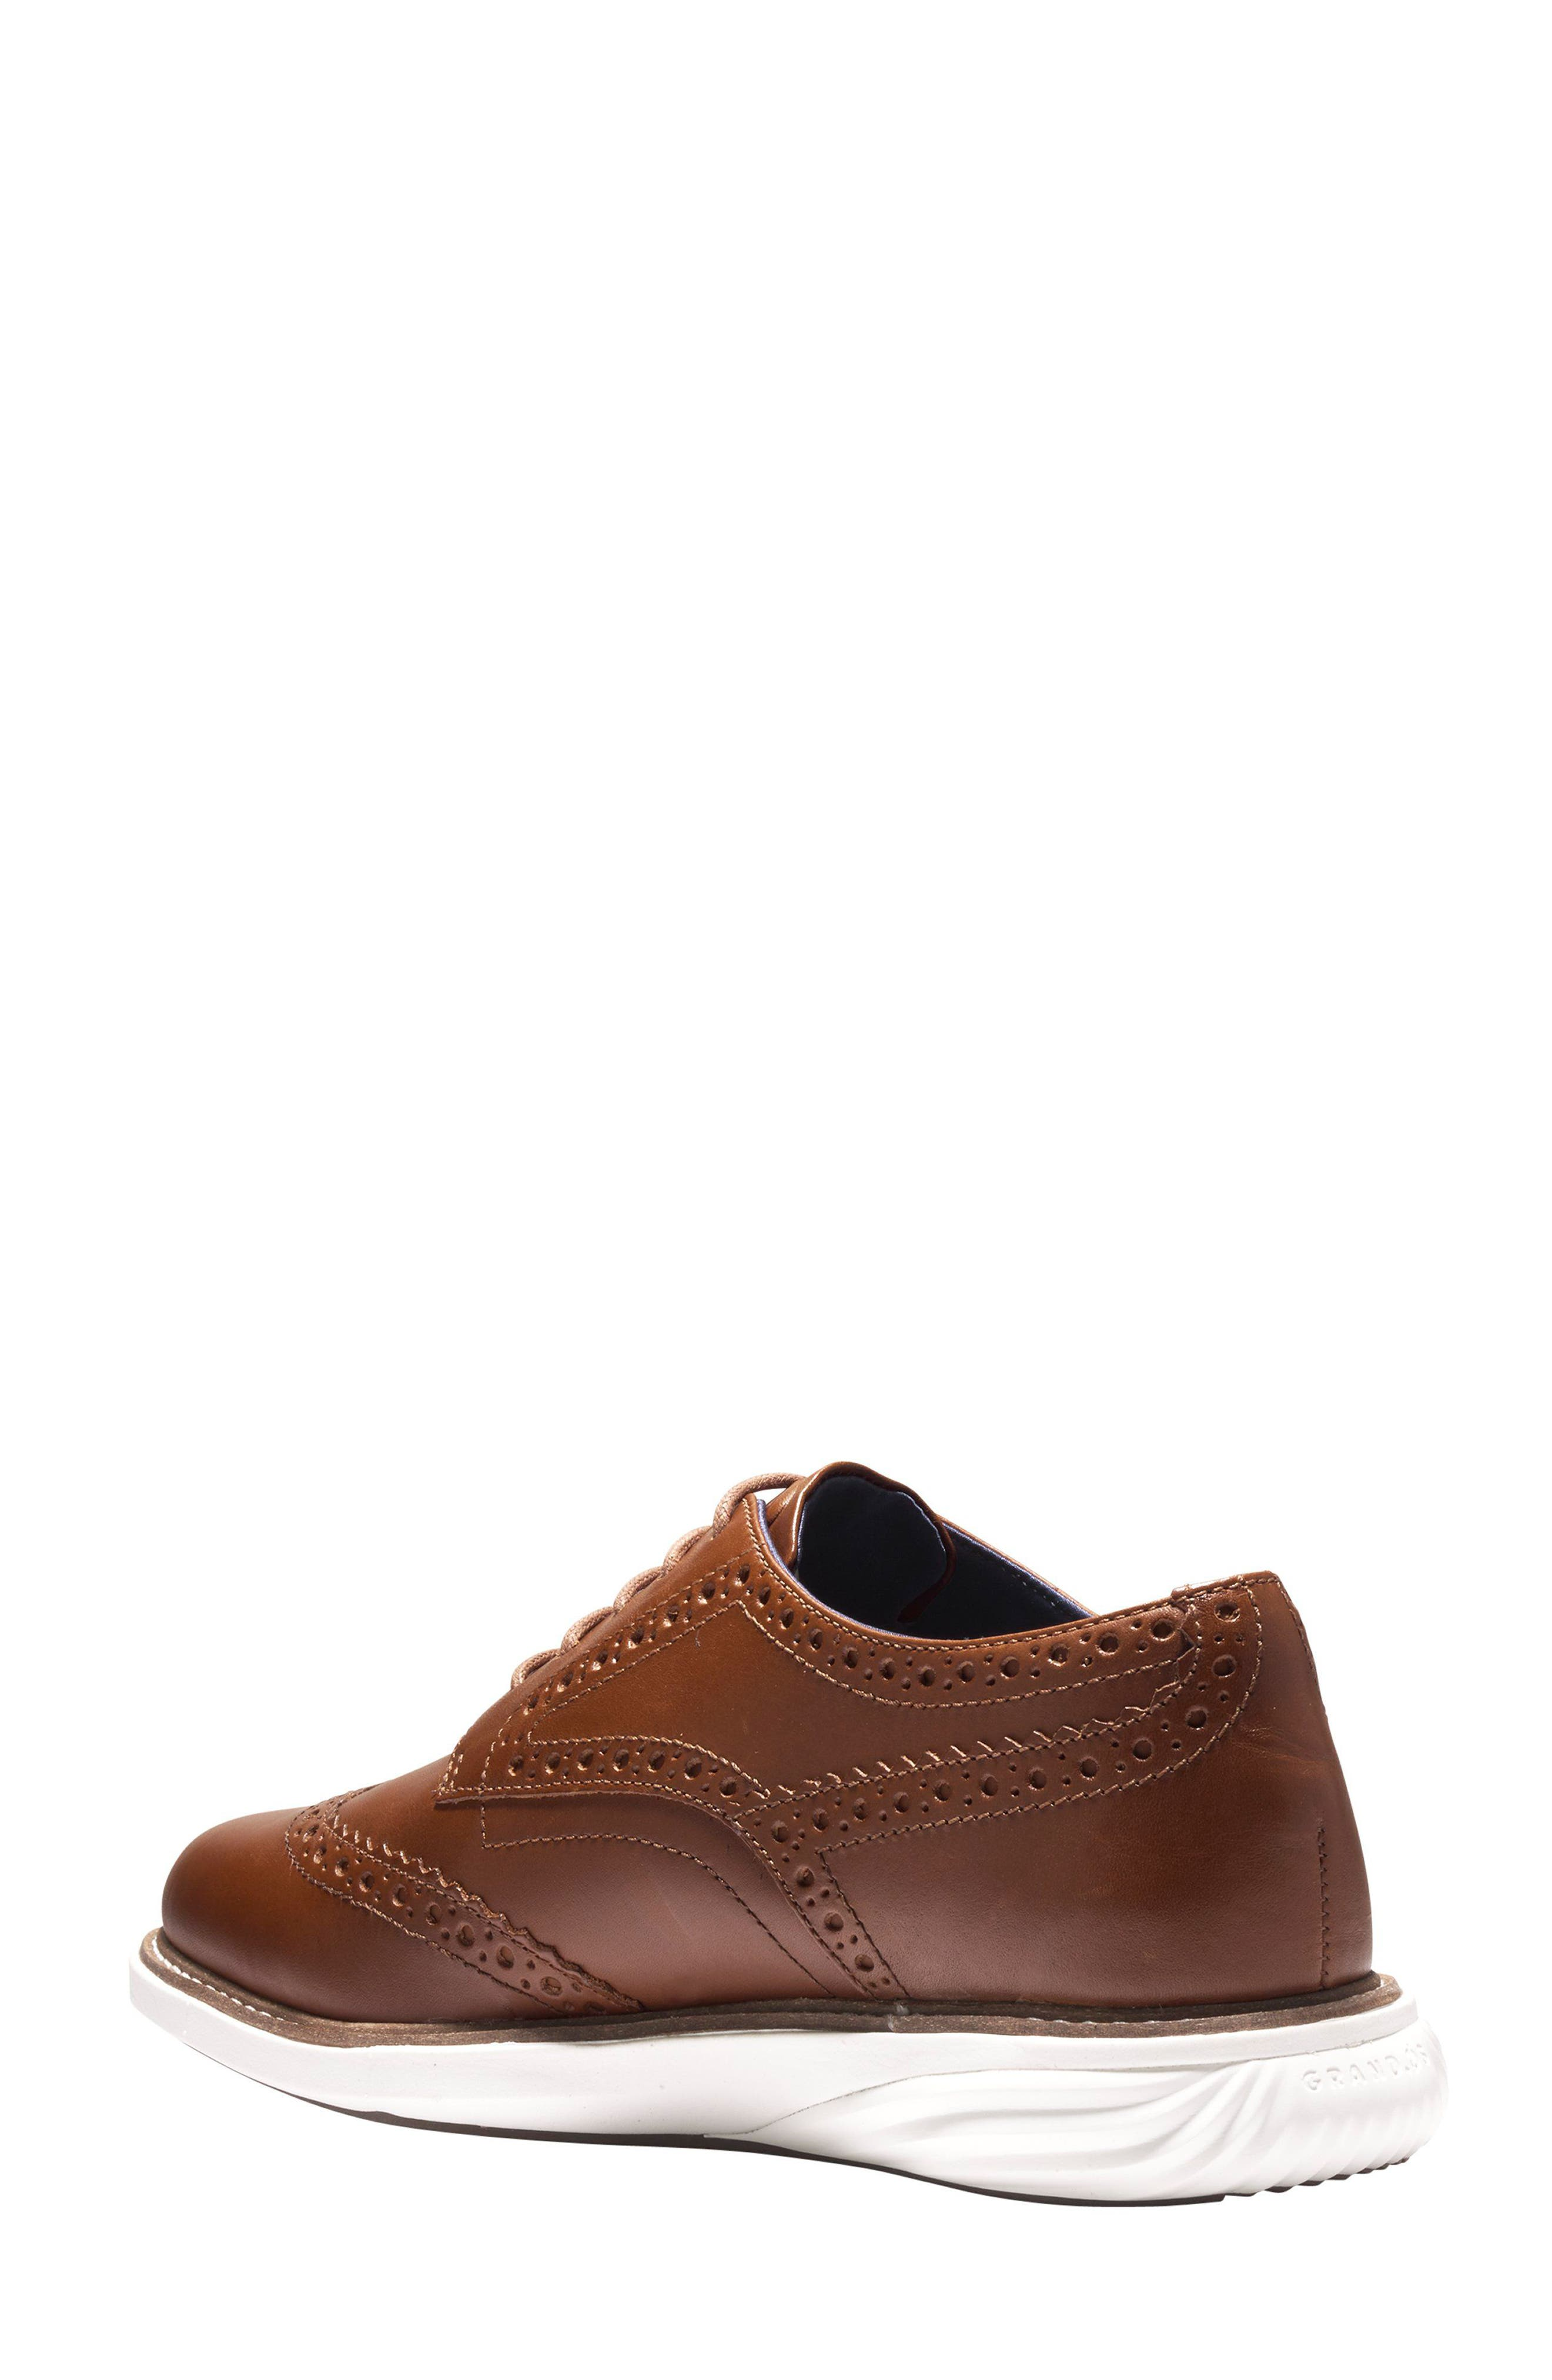 Grandevolution Shortwing Oxford Sneaker,                             Alternate thumbnail 2, color,                             WOODBURY LEATHER